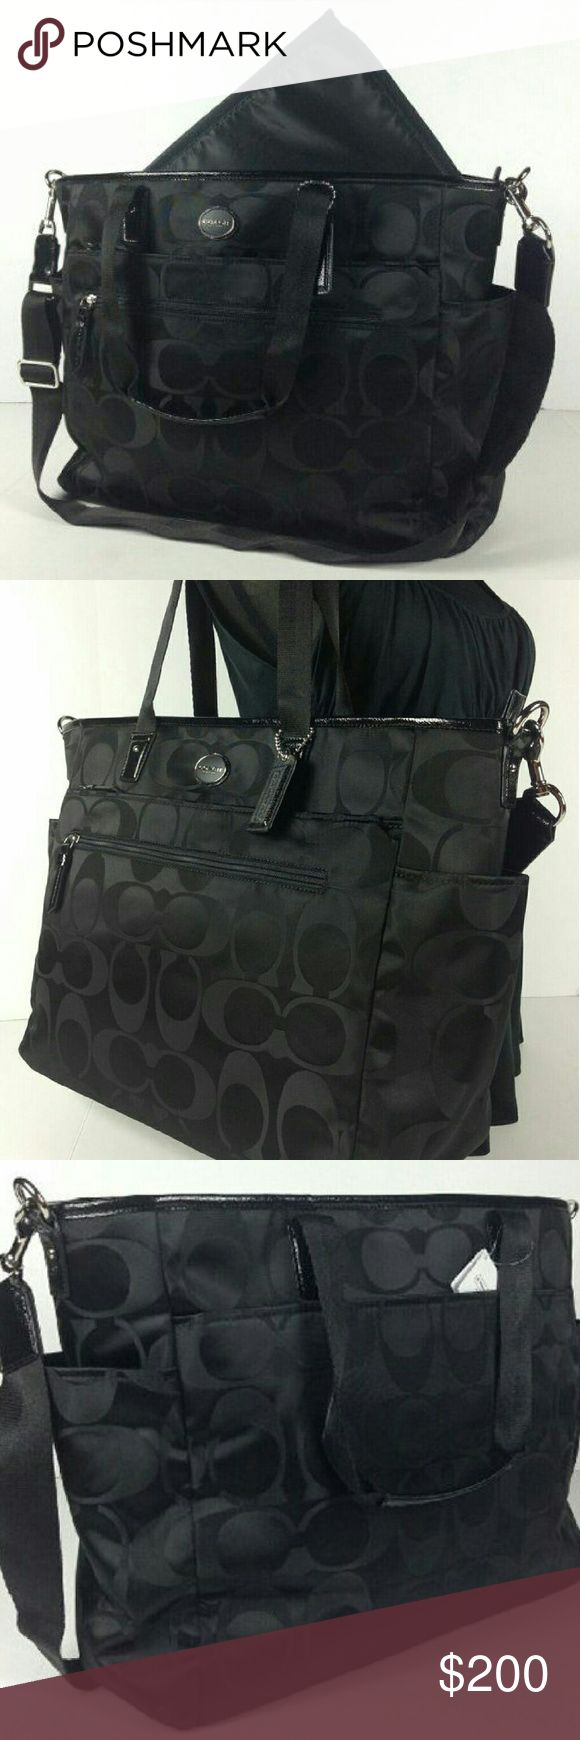 Black coach diaper/ messenger bag Excellent condition used 1 week real 100 % it is a diaper bag however I used it for work for my laptop and files worked perfectly I just got a different job didn't need it it's been sitting in my closet Bags